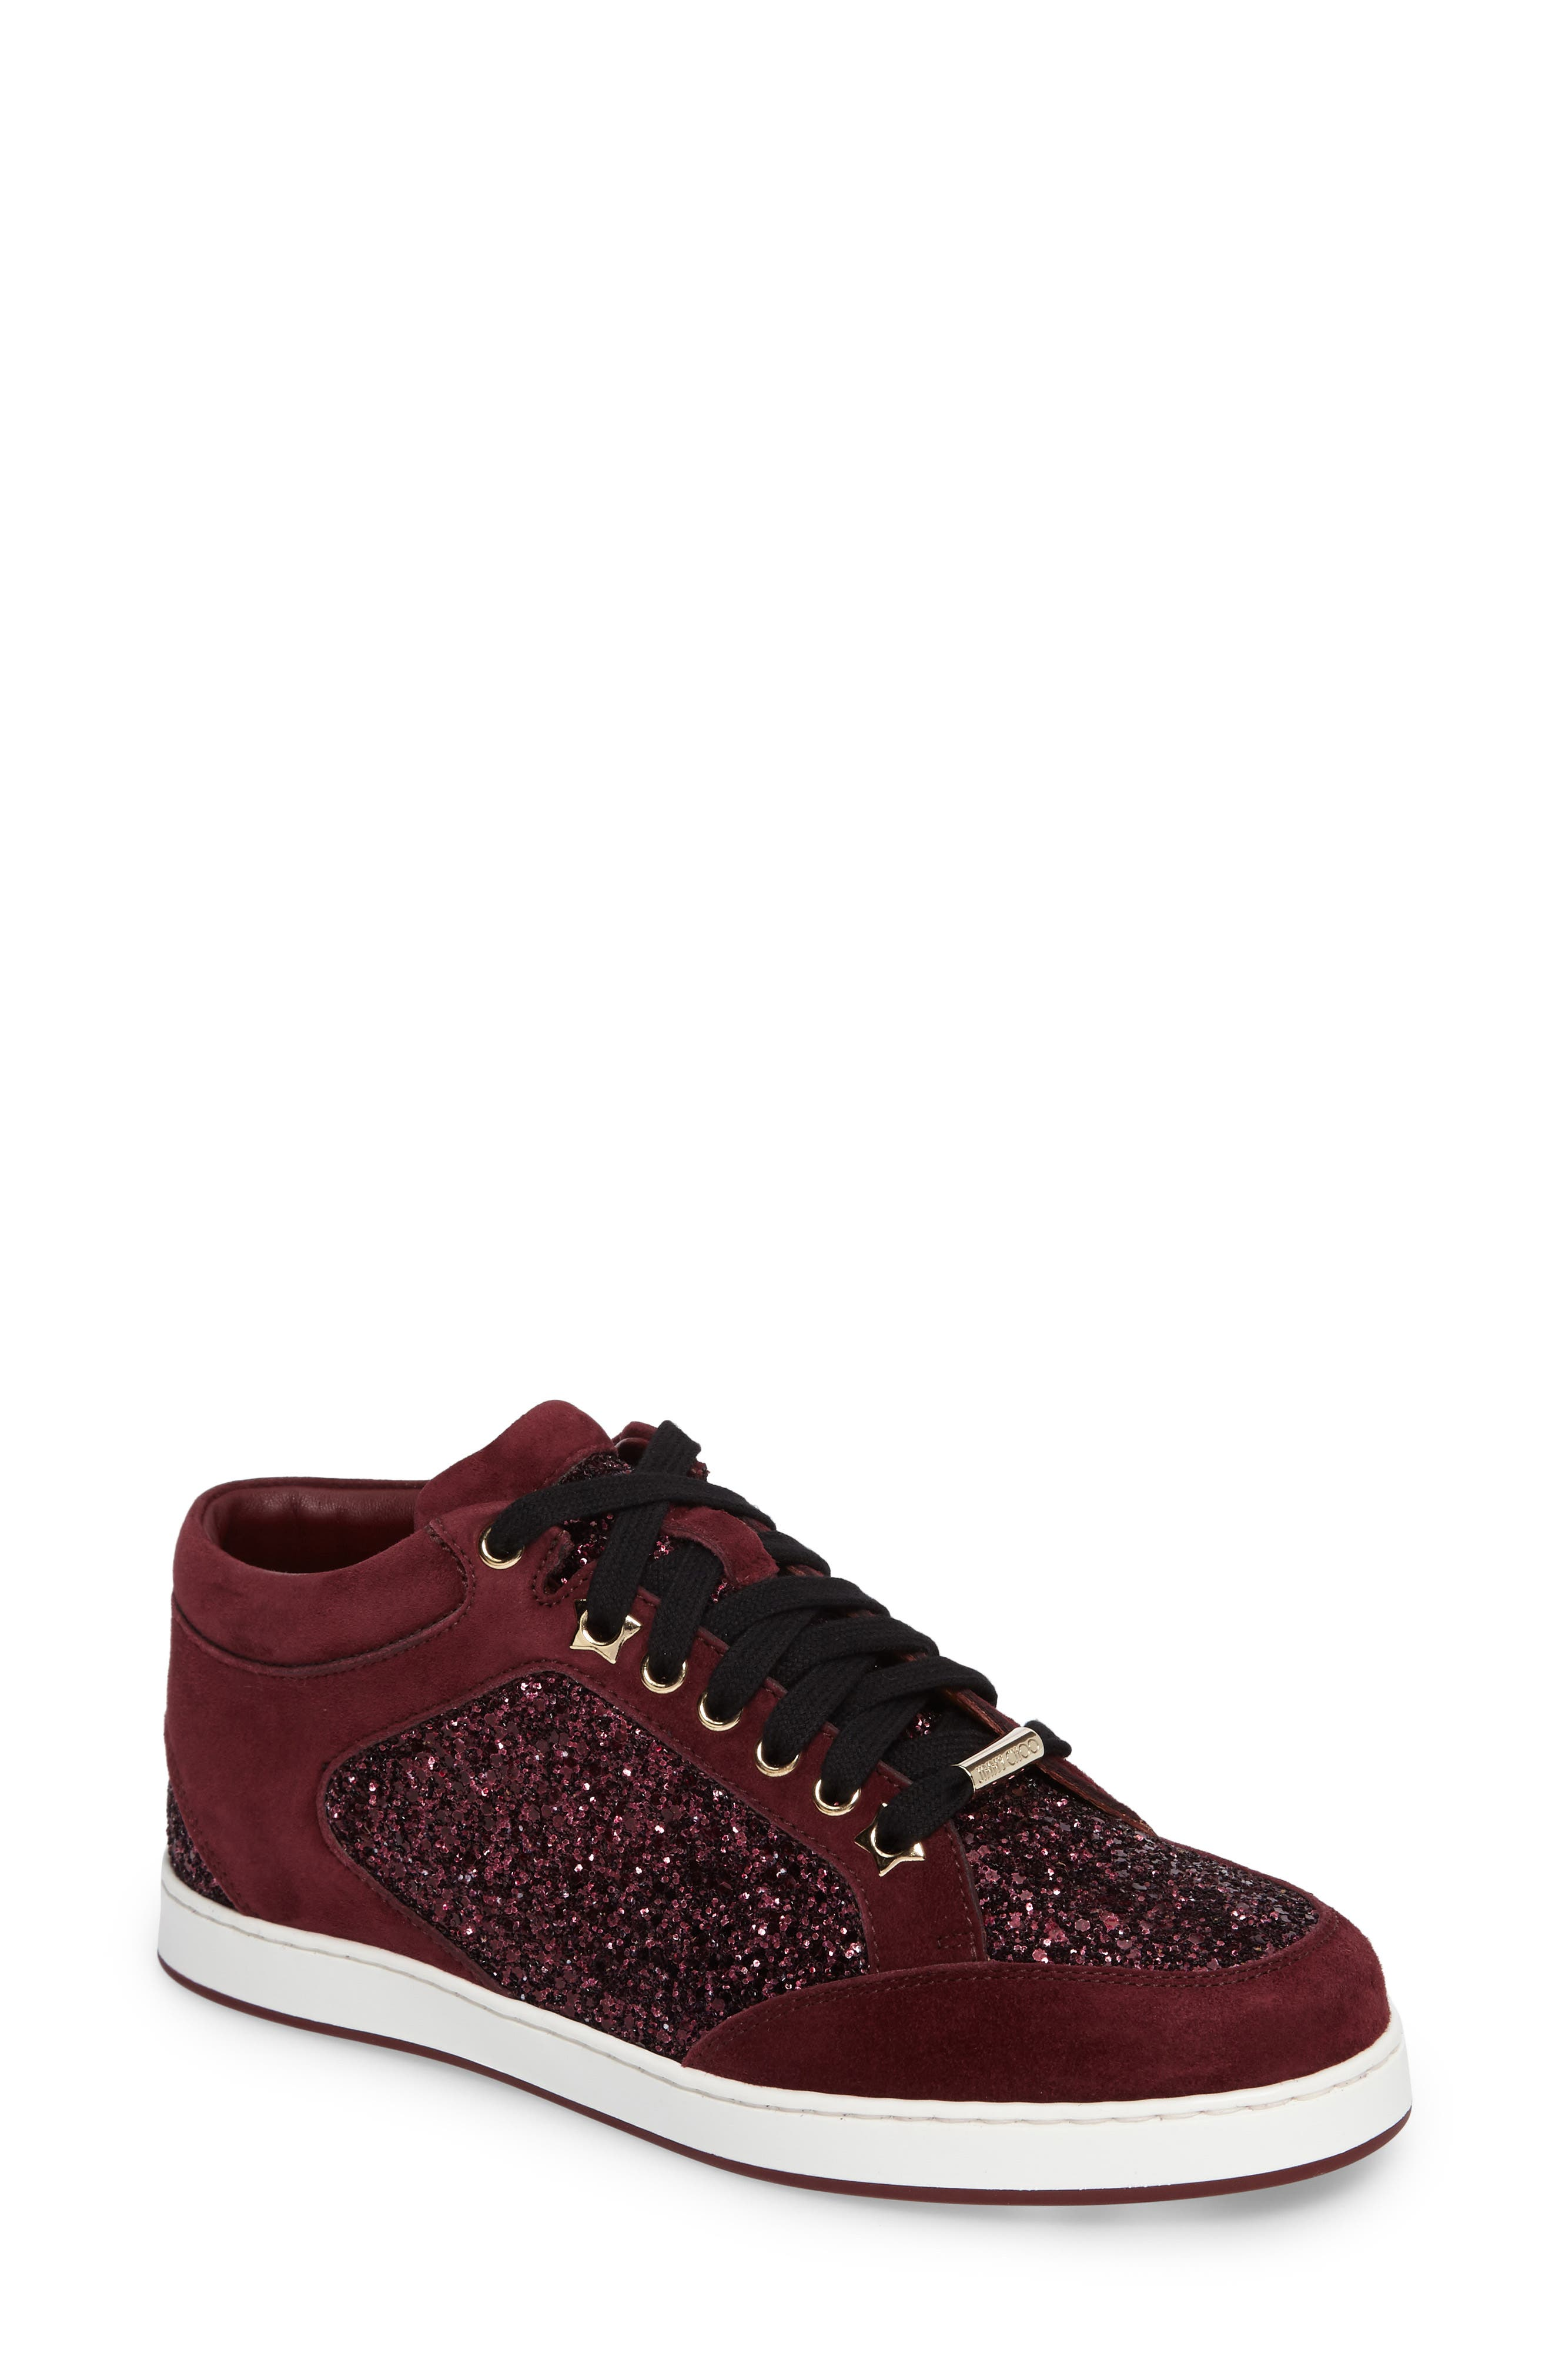 Miami Low Top Sneaker,                         Main,                         color, Burgundy